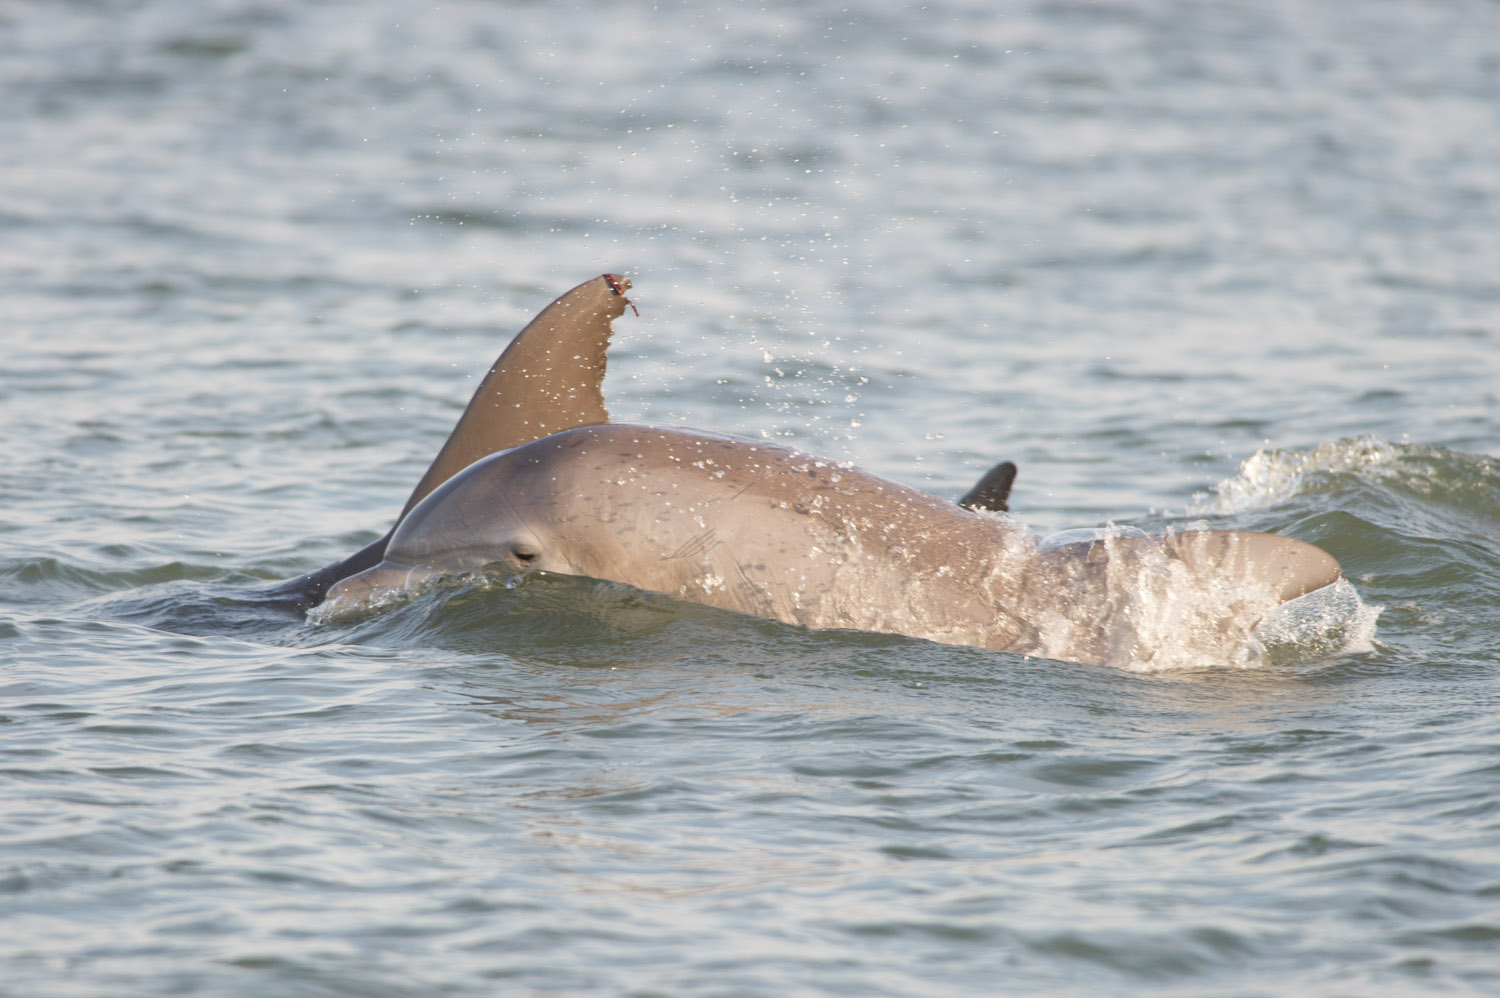 A couple of the group of dolphins that were swimming right around the boat.